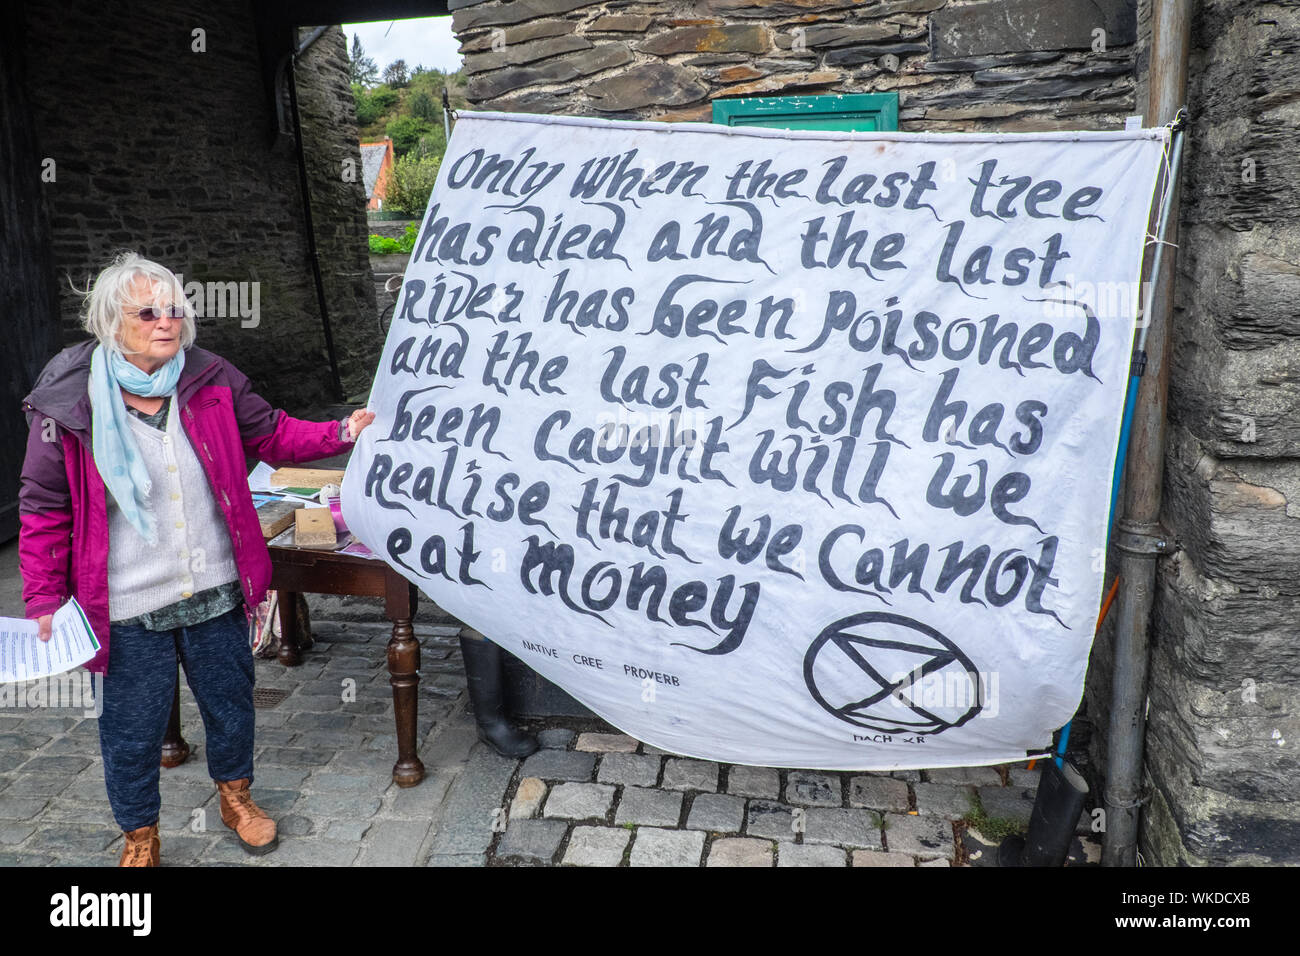 Extinction Rebellion,supporter,supporters,collecting,signatures,for,a,campaign,to,show, support,for,climate,emergency,awareness,in,Machynlleth,Wales - Stock Photo